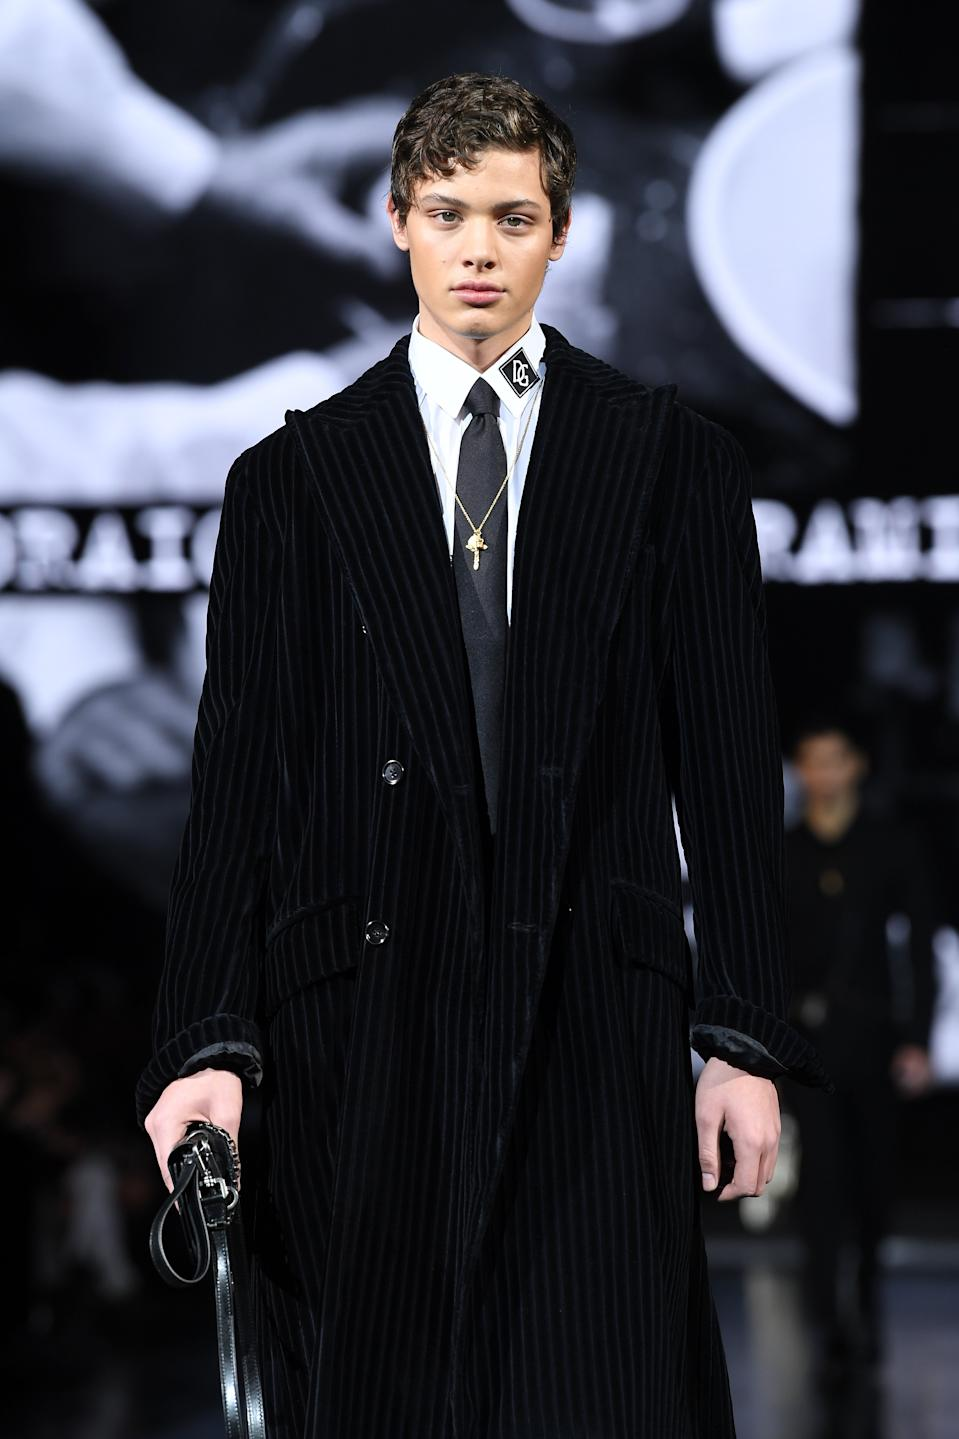 Bobby Brazier walks the runway at the Dolce e Gabbana fashion show on January 11, 2020 in Milan, Italy. (Photo by Daniele Venturelli/Daniele Venturelli/WireImage )